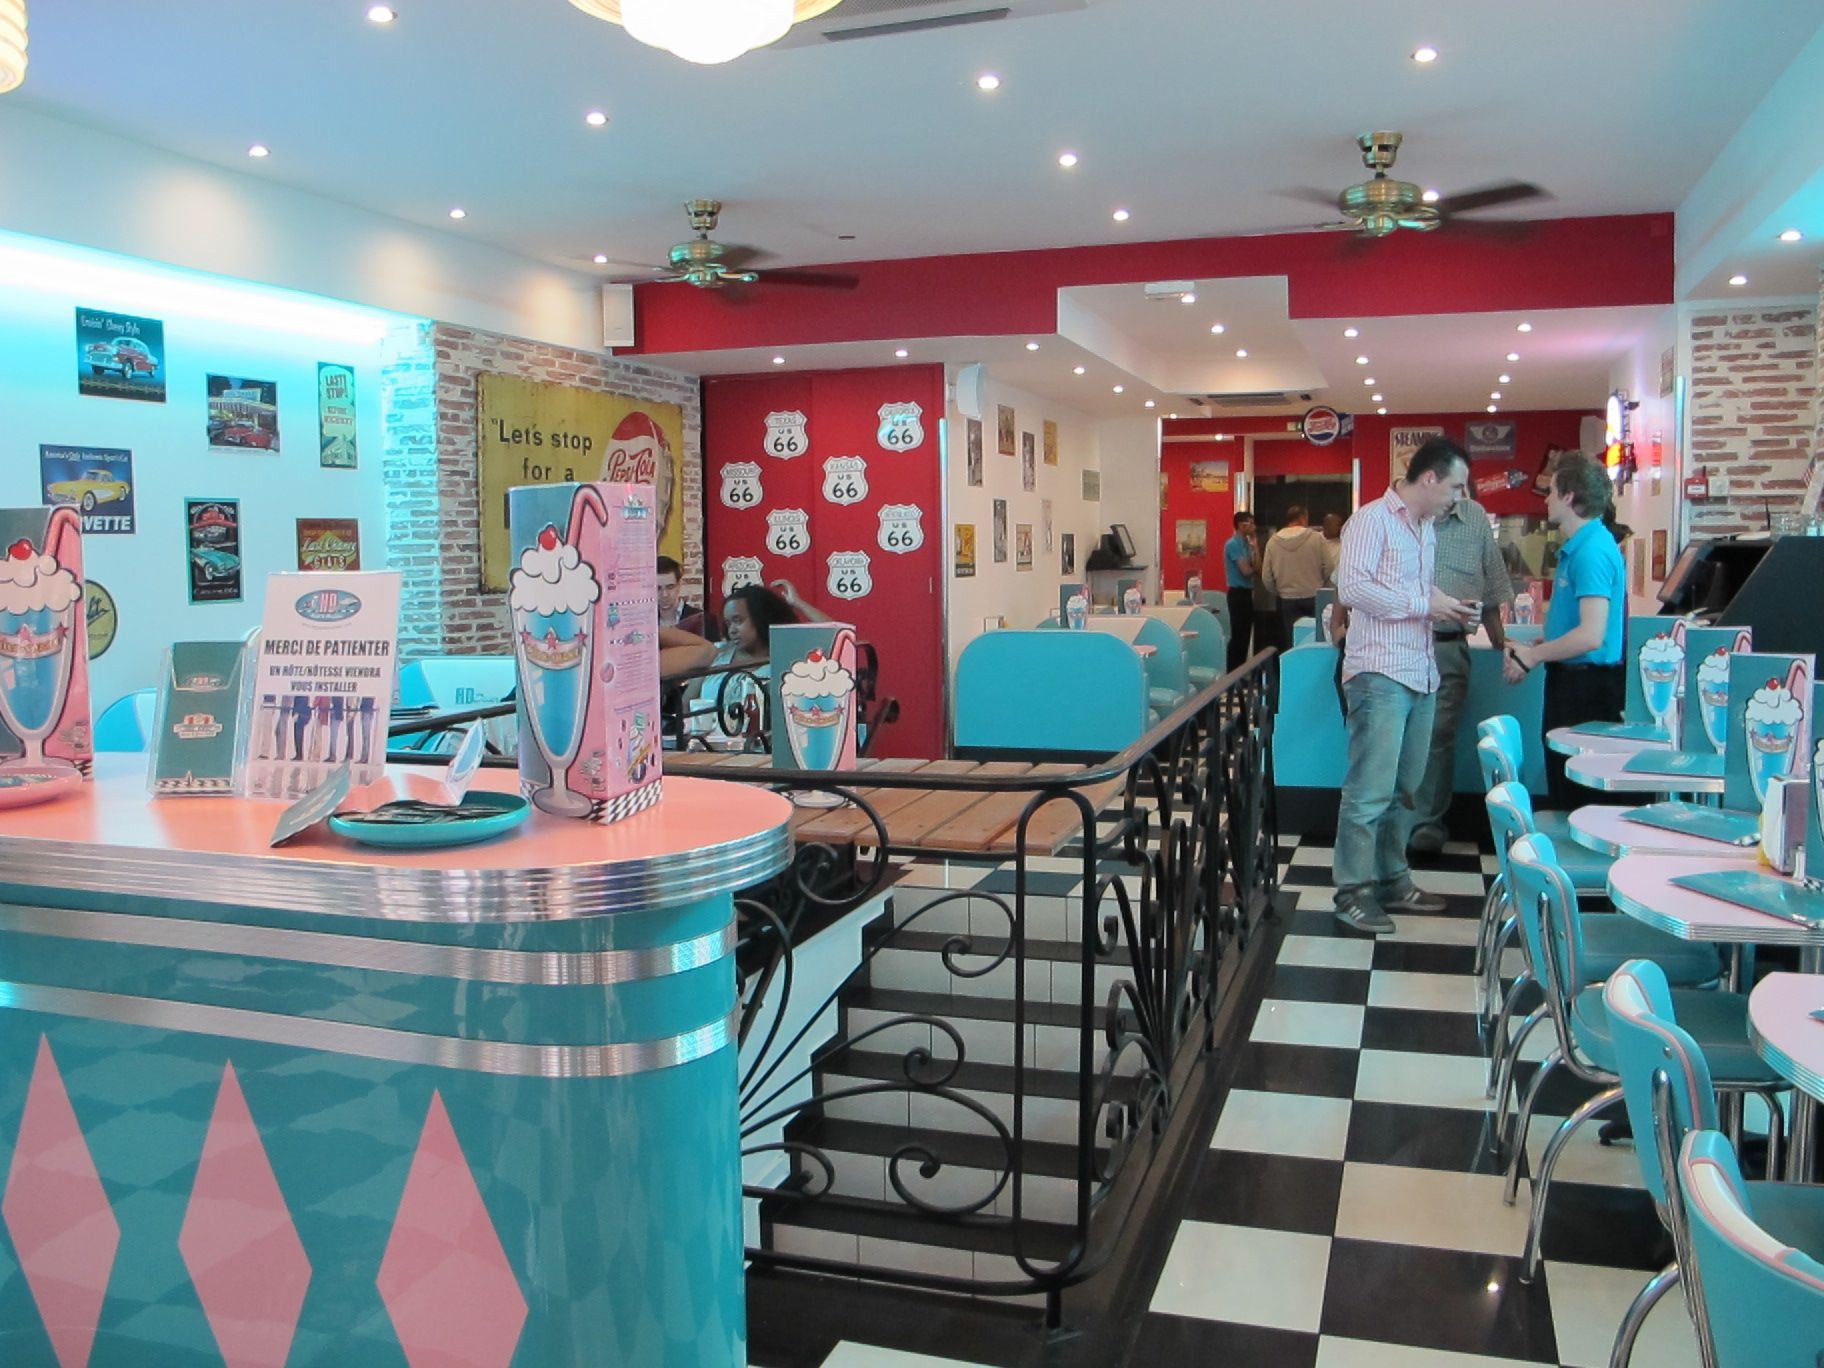 Kitchen Diner Images Hd Diner 1950 39s American Themed Diner In France Bars And